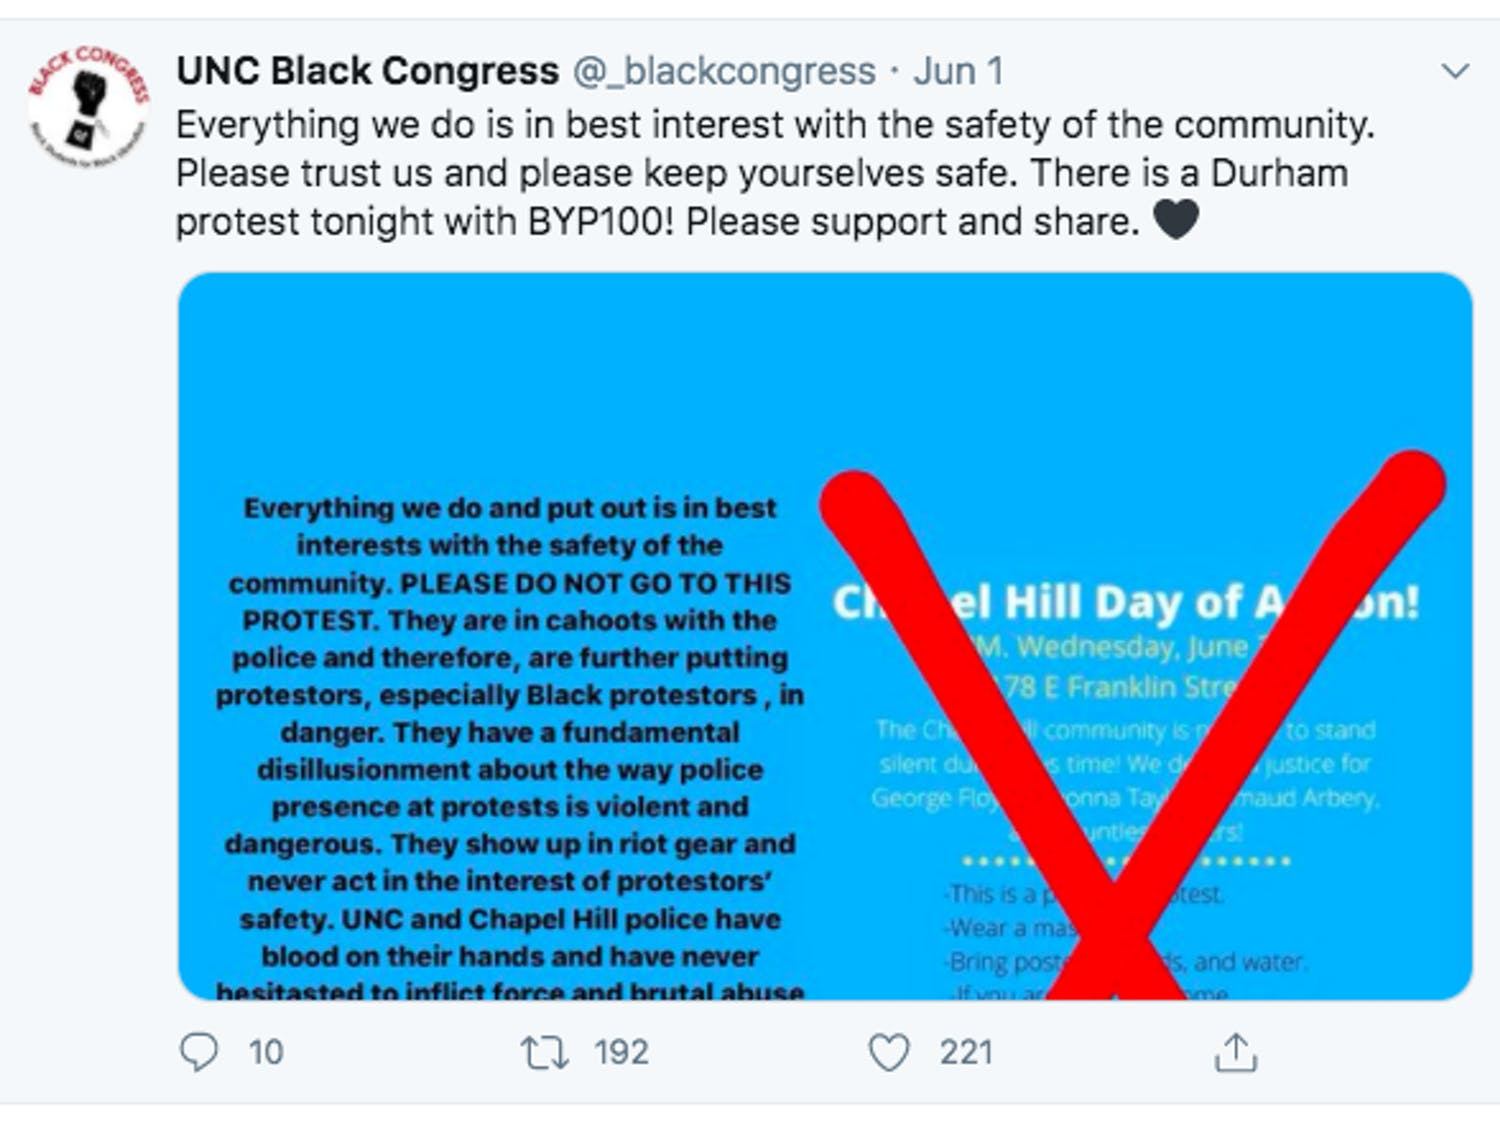 UNC Black Congress's initial Tweet on Monday, June 1, 2020 warning against attending the Chapel Hill Day of Action Protest that occurred on Wednesday, June 3. The organization encouraged that people attend Durham's protest on Monday, June 1, and later arranged their own protest on Friday, June 5.